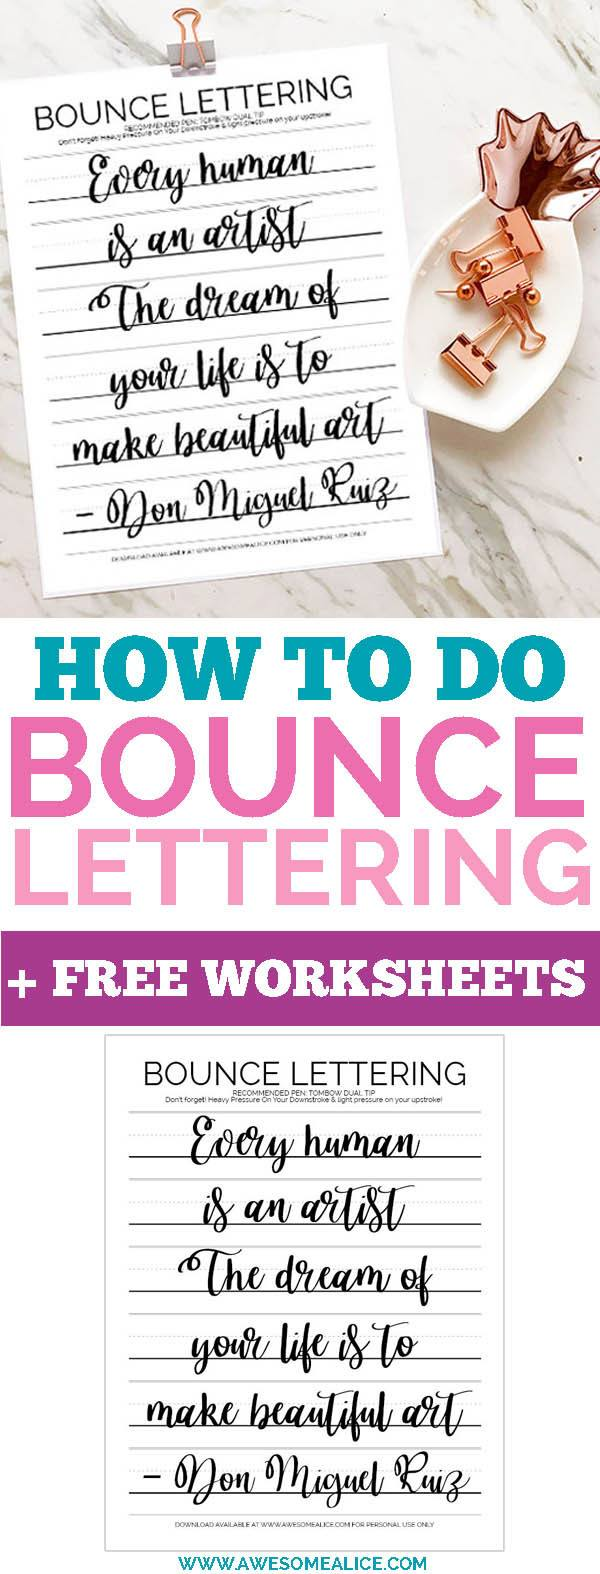 How To Do Bounce Lettering + Free Practice Sheet | Awesome Alice